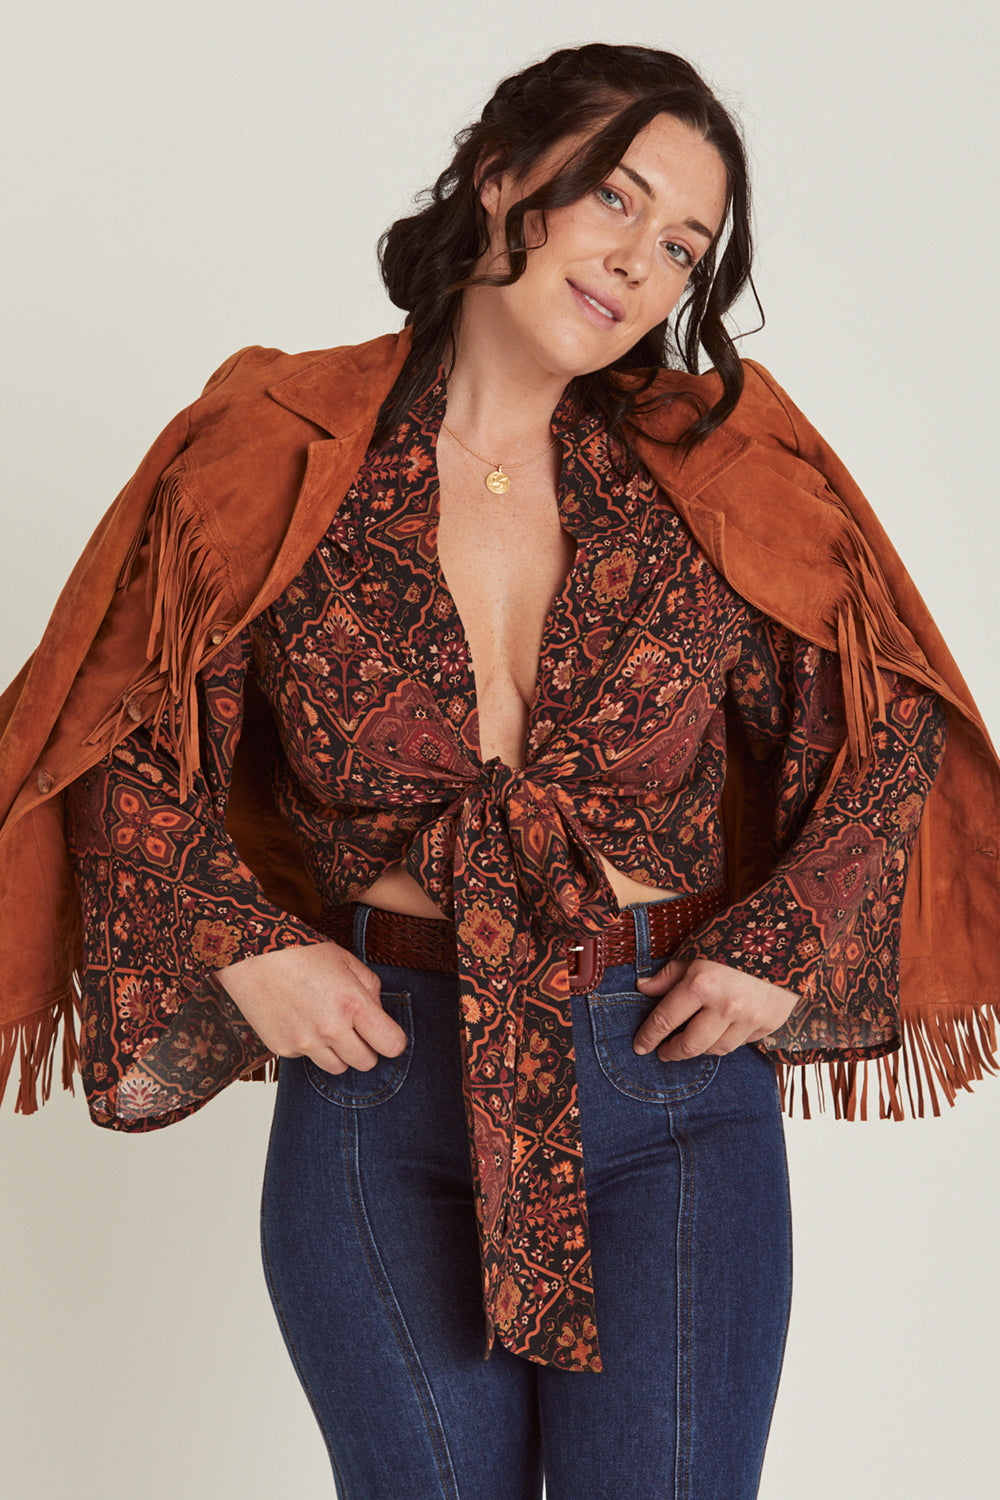 Zephyr Wrap Top in Pepper